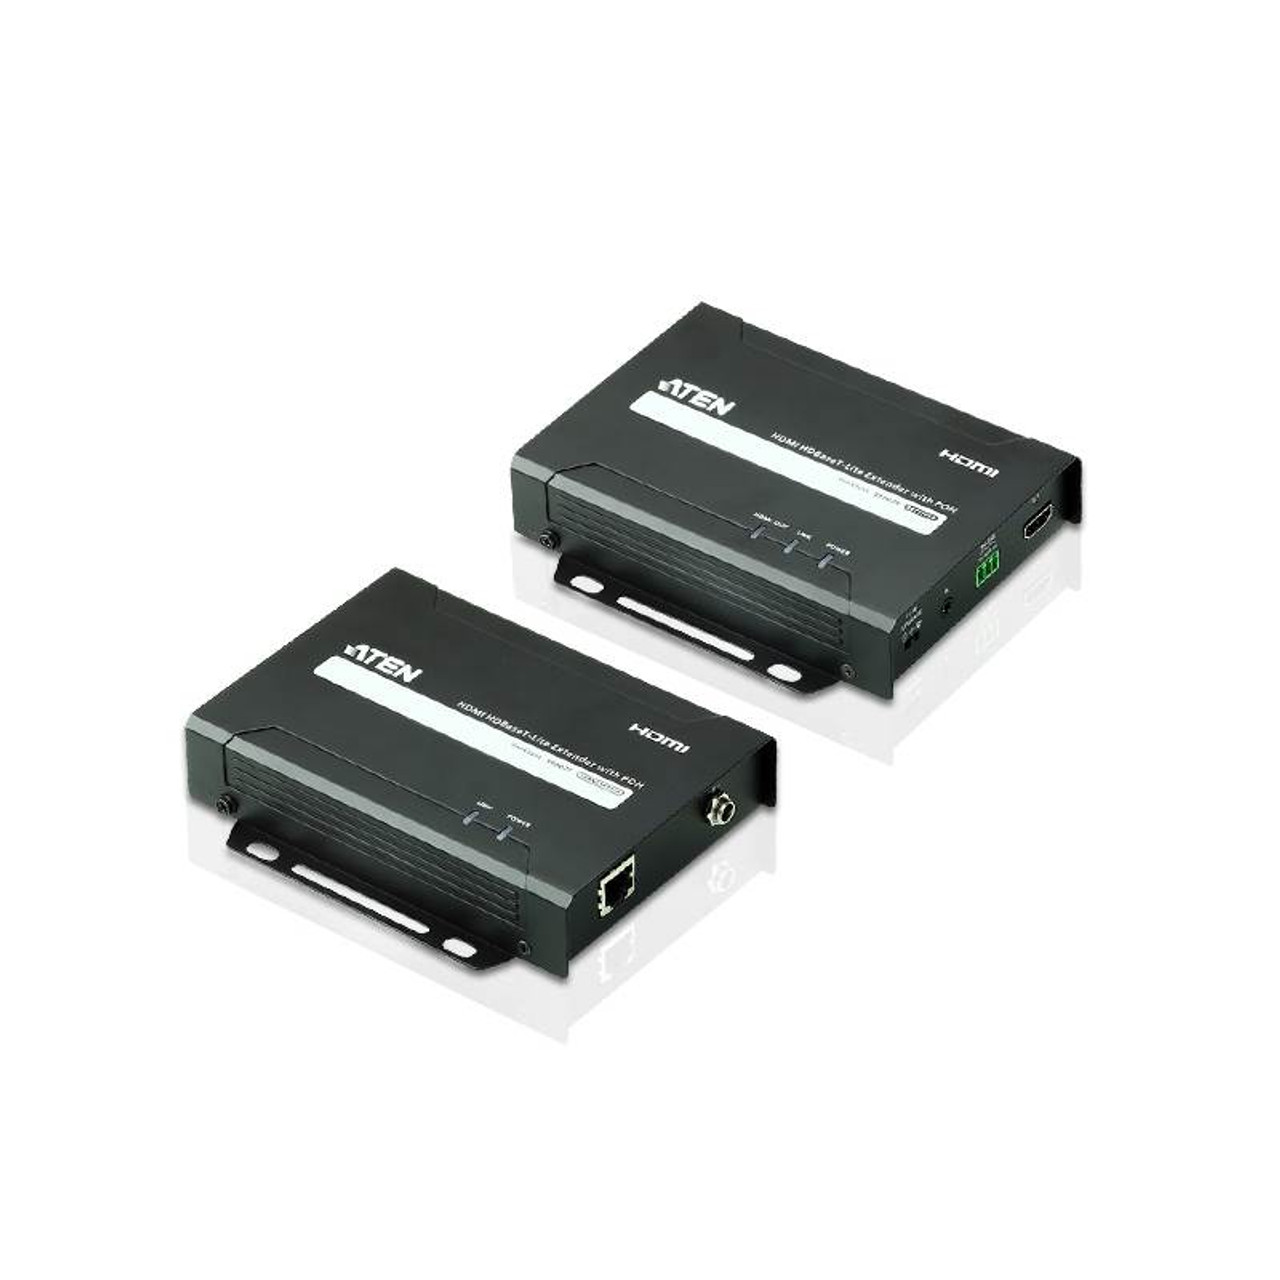 Image for ATEN VE802 HDMI HDBaseT-Lite Extender with POH - 4K at 40m (HDBaseT Class B) CX Computer Superstore